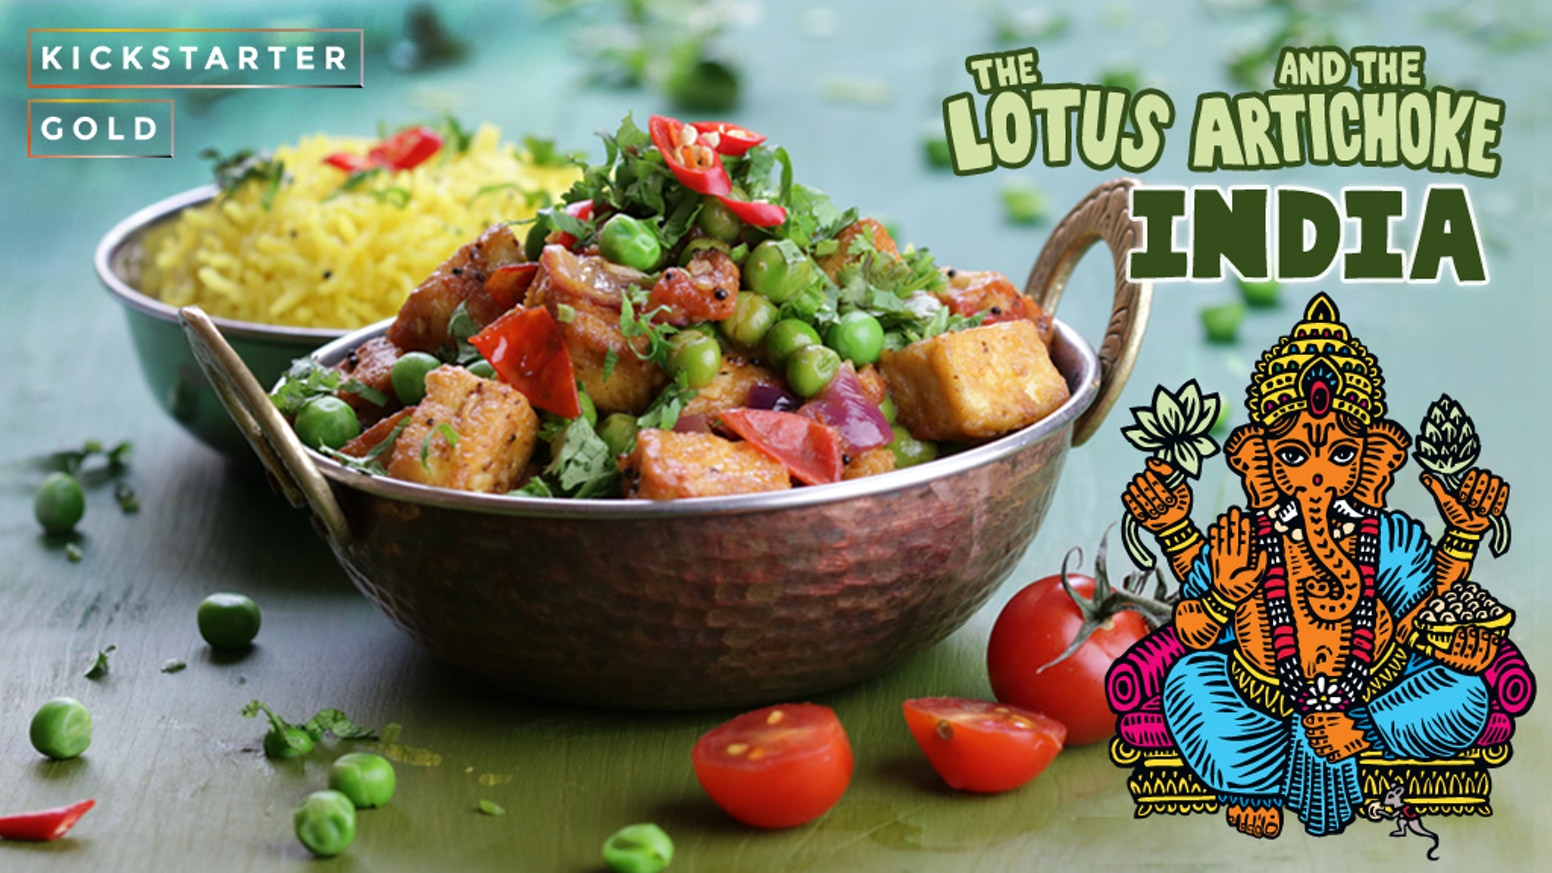 The lotus and the artichoke india vegan cookbook by justin p kickstarter gold a culinary love story with 90 vegan recipes inspired by my forumfinder Choice Image